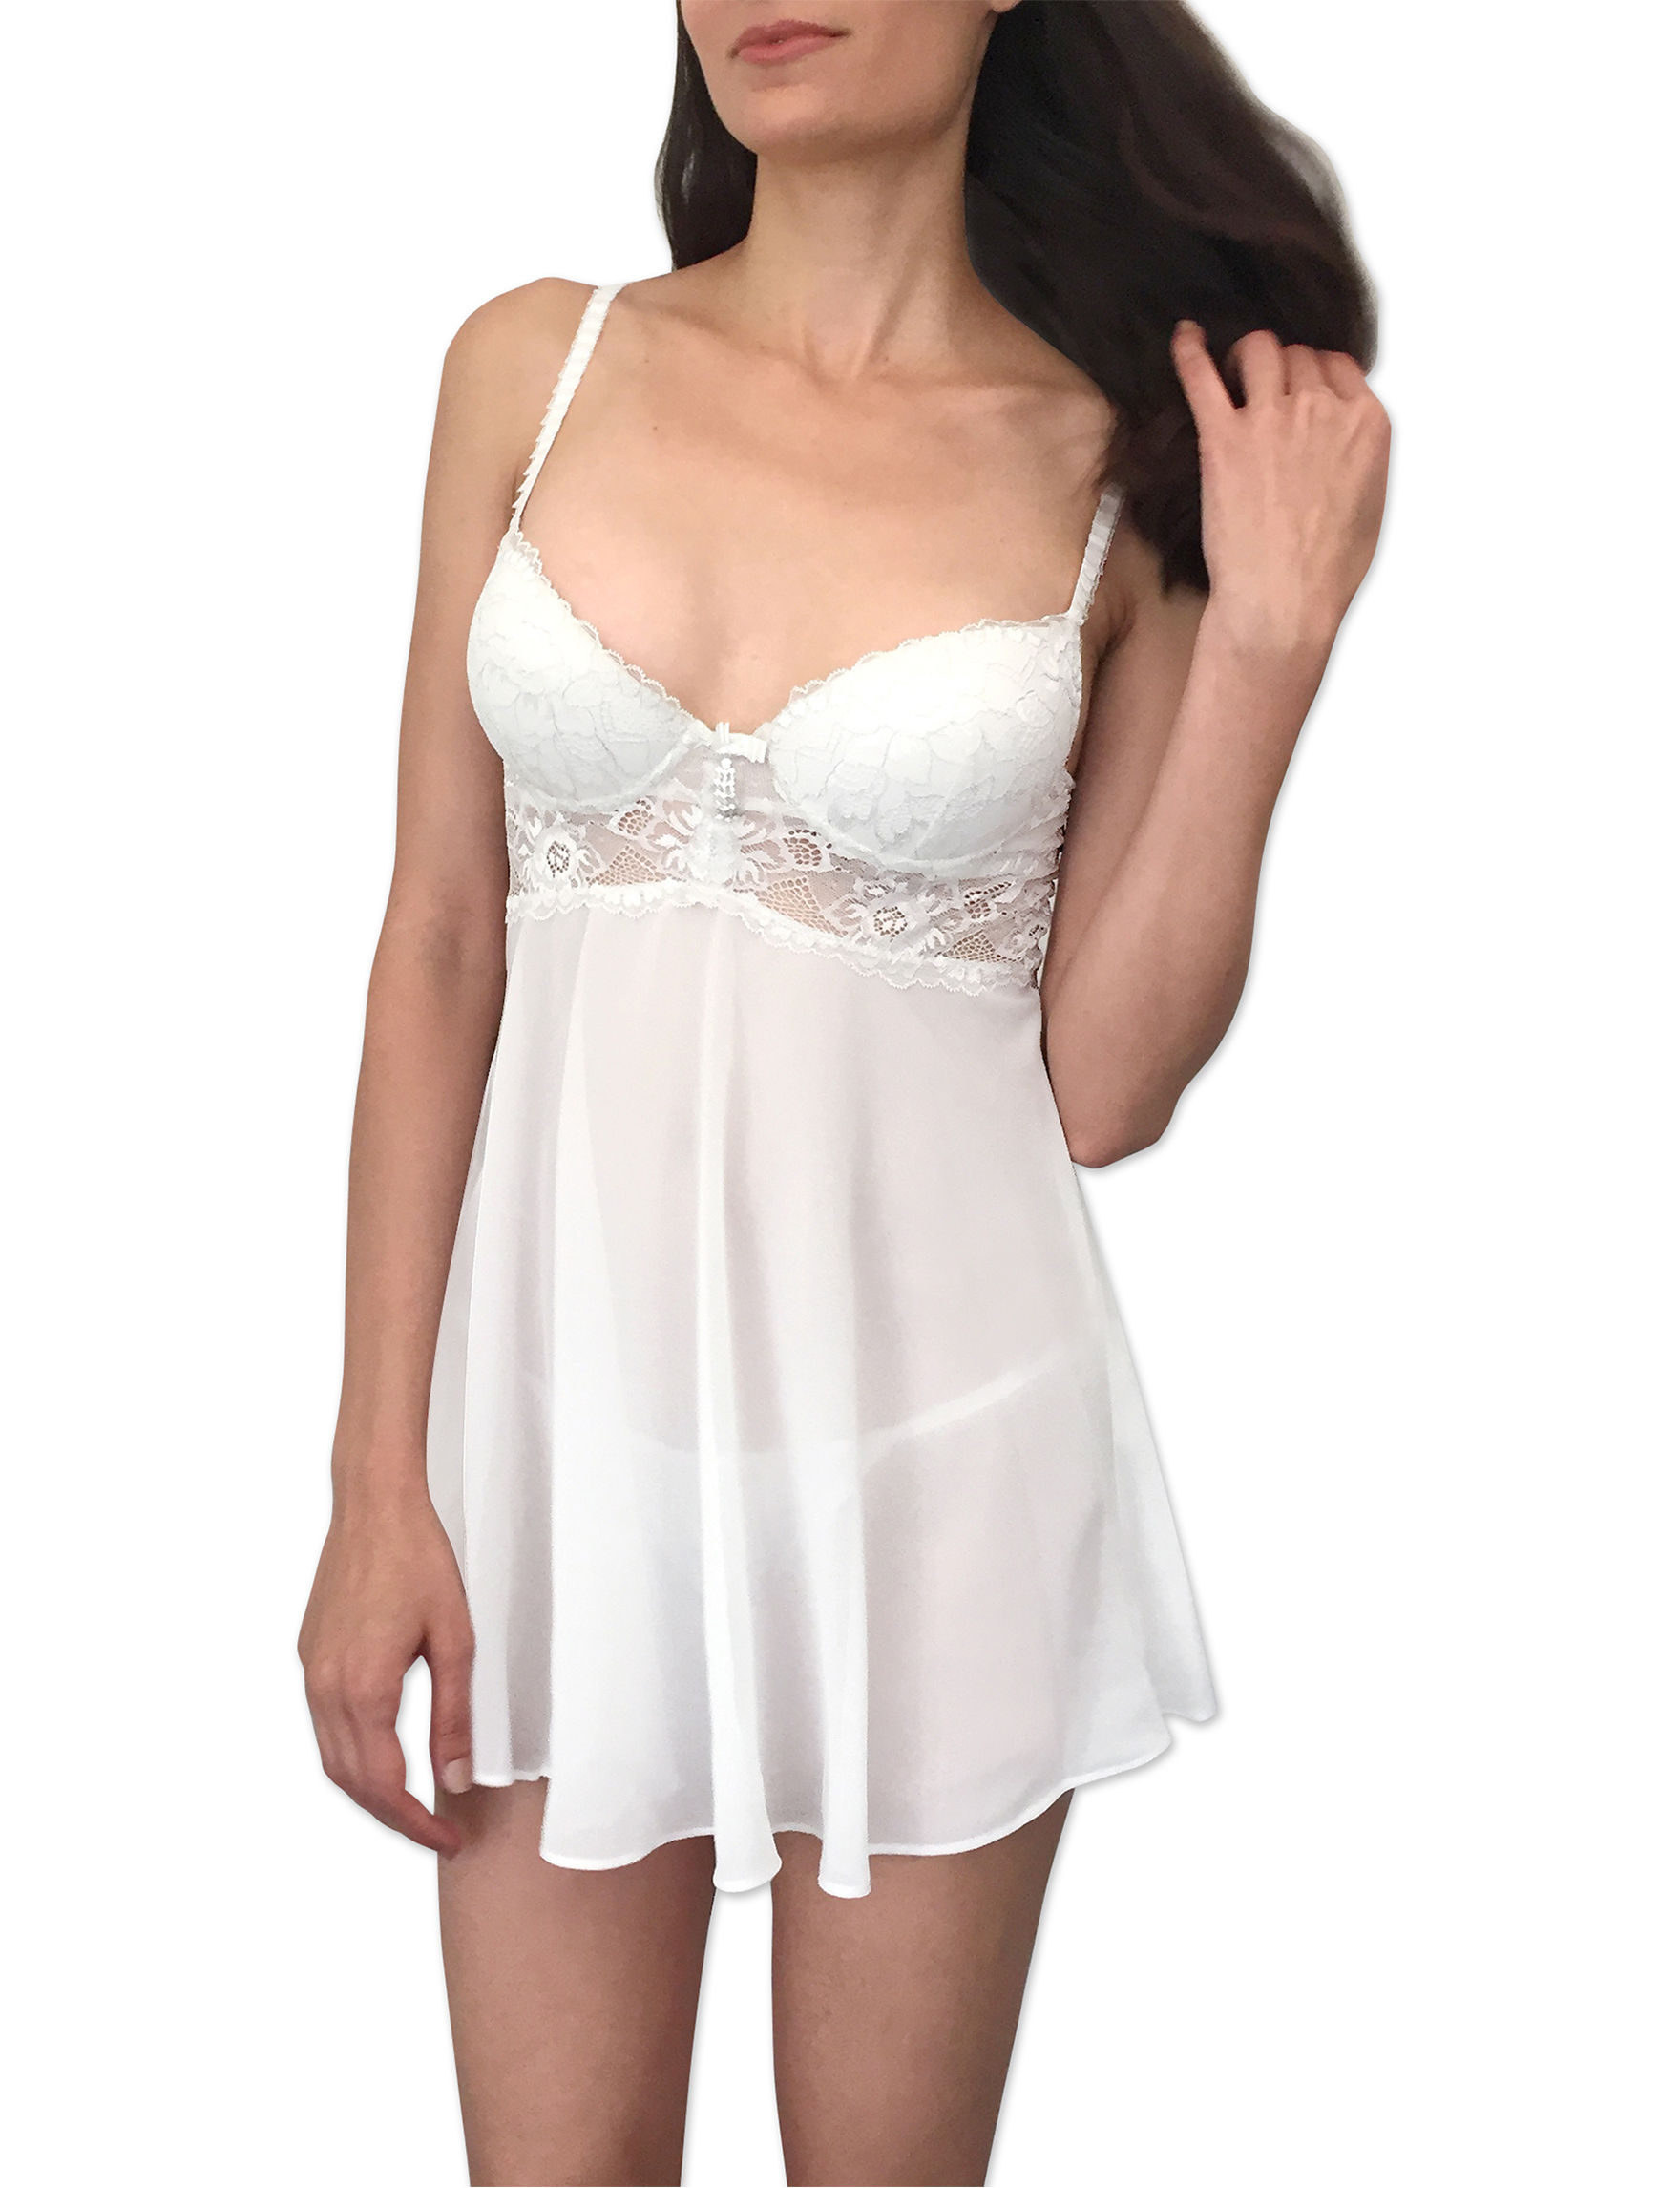 Cinema Etoile Push-Up Babydoll Gown   Stage Stores